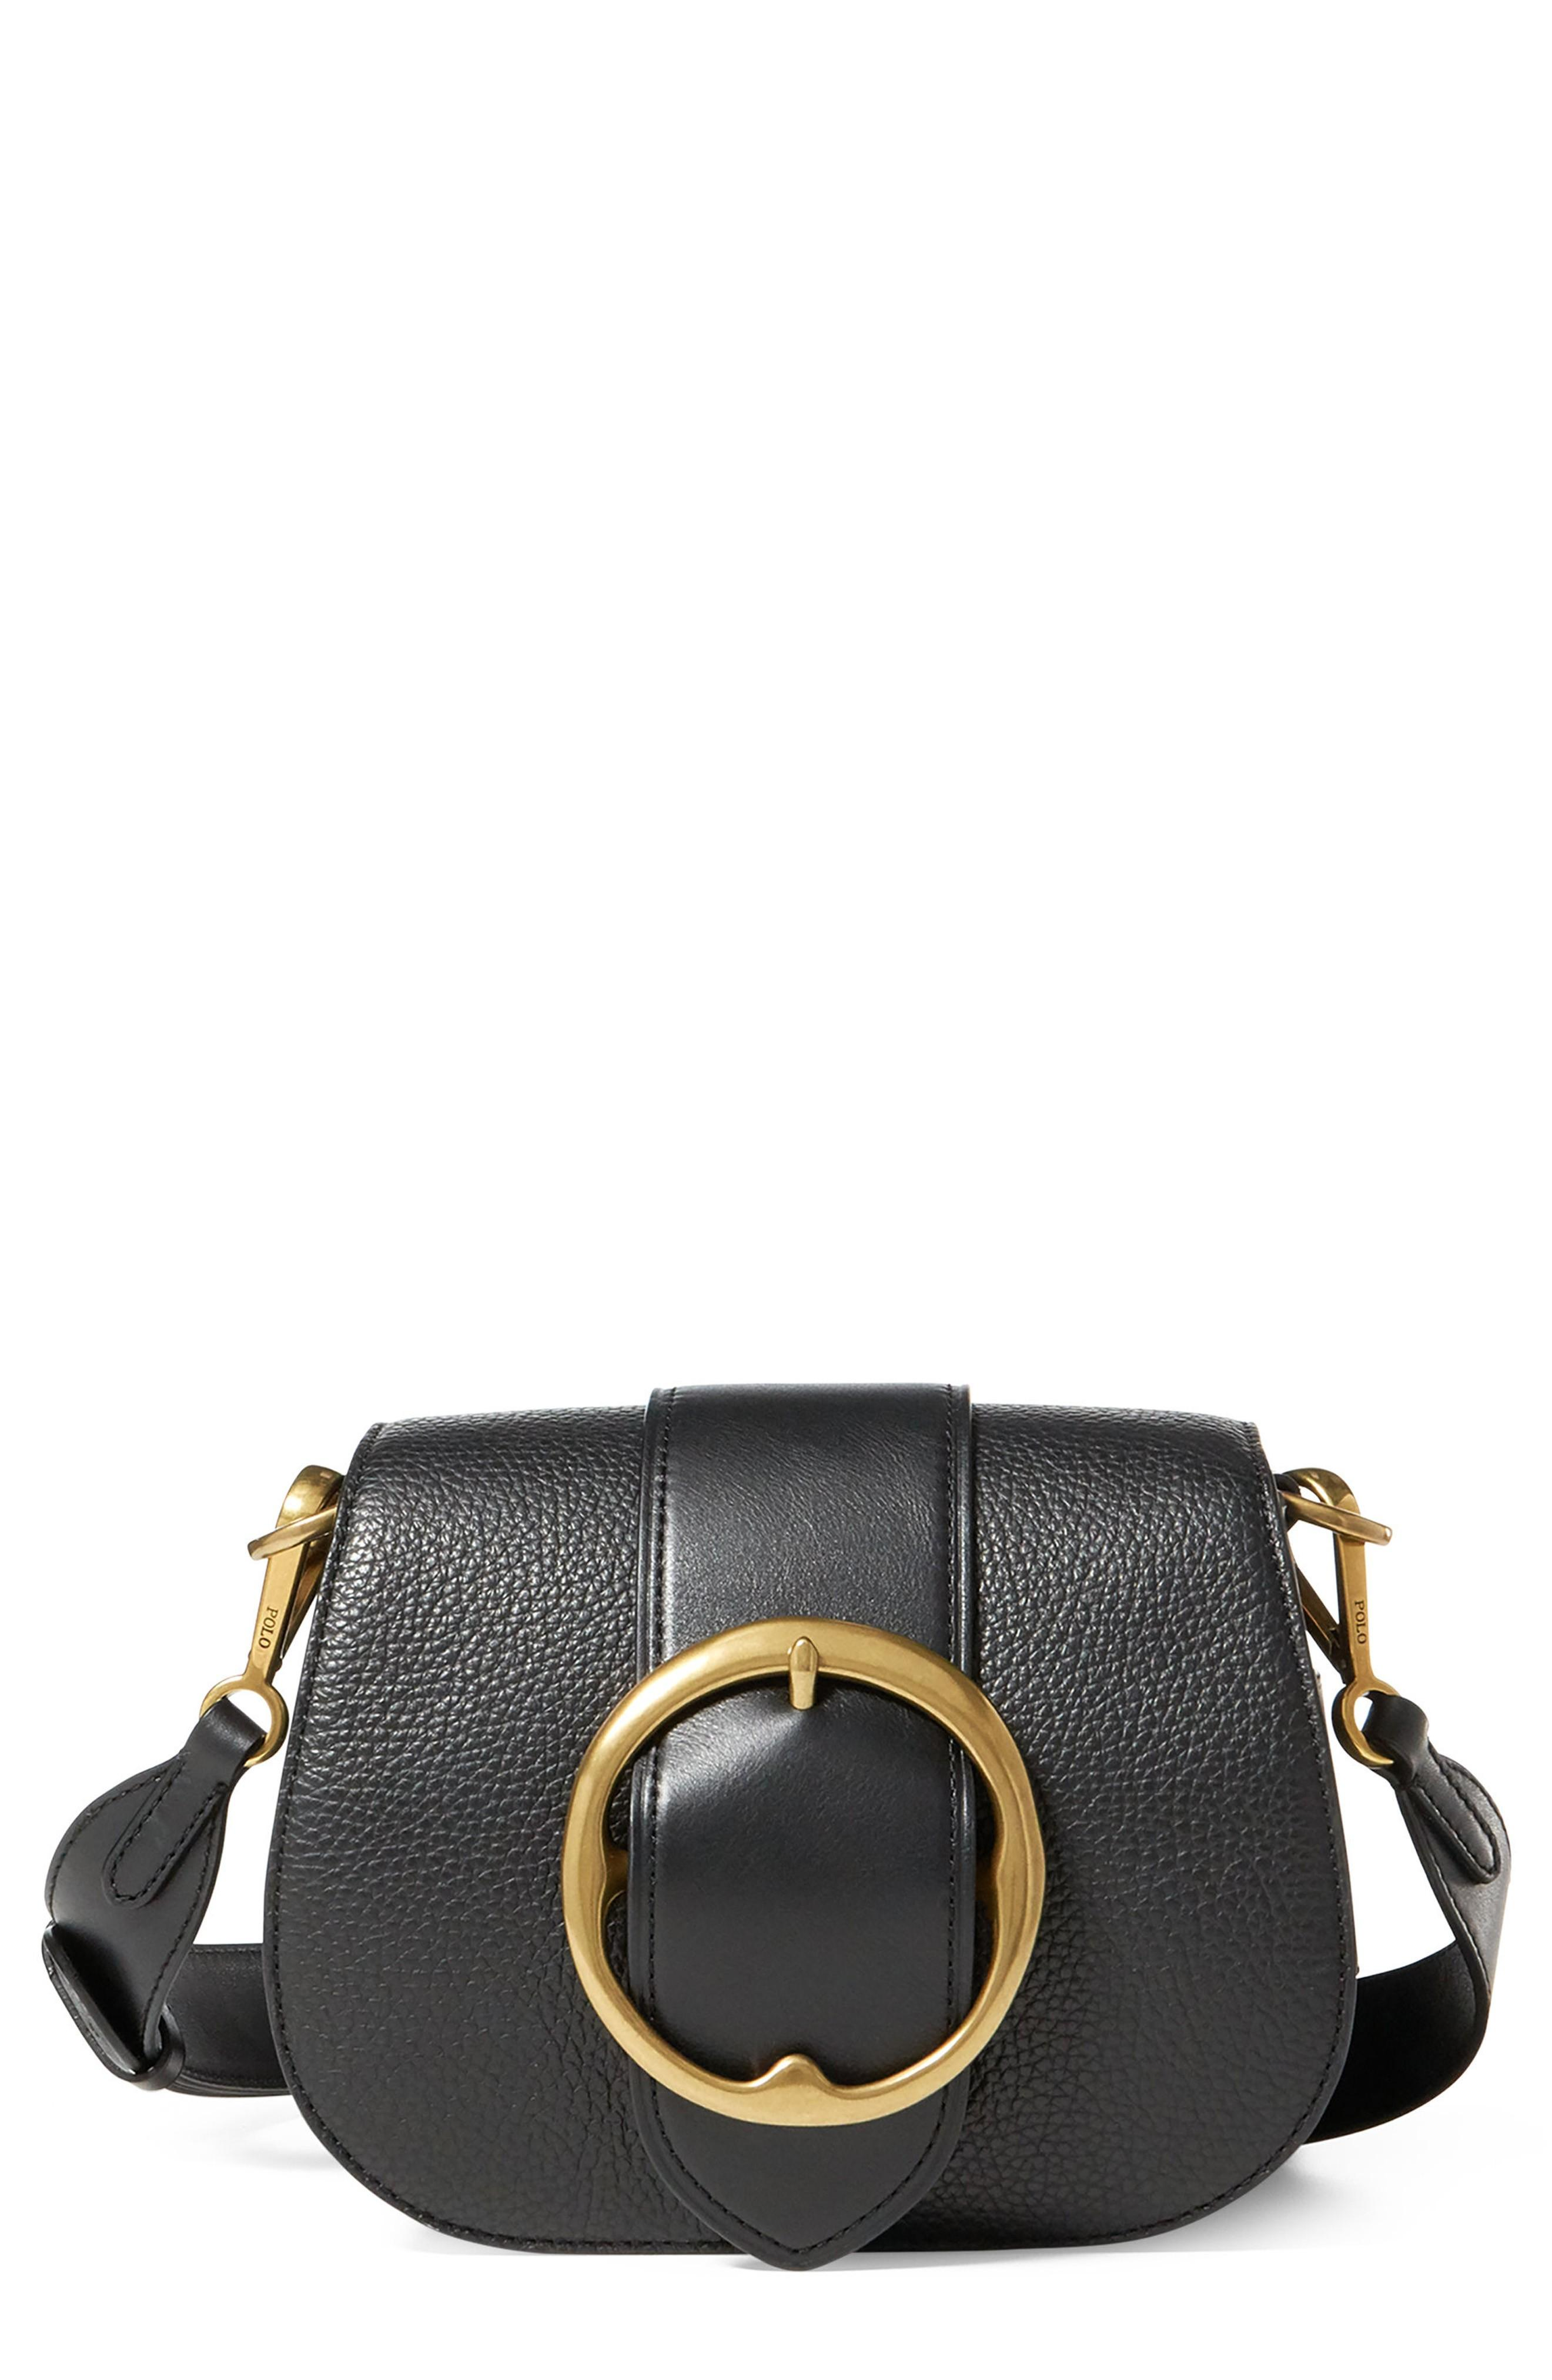 24ca5f47f6 An antique buckle unearthed from Ralph Lauren s archives inspired this  vintage-meets-modern bag crafted from supple Italian leather in a classic  saddle ...